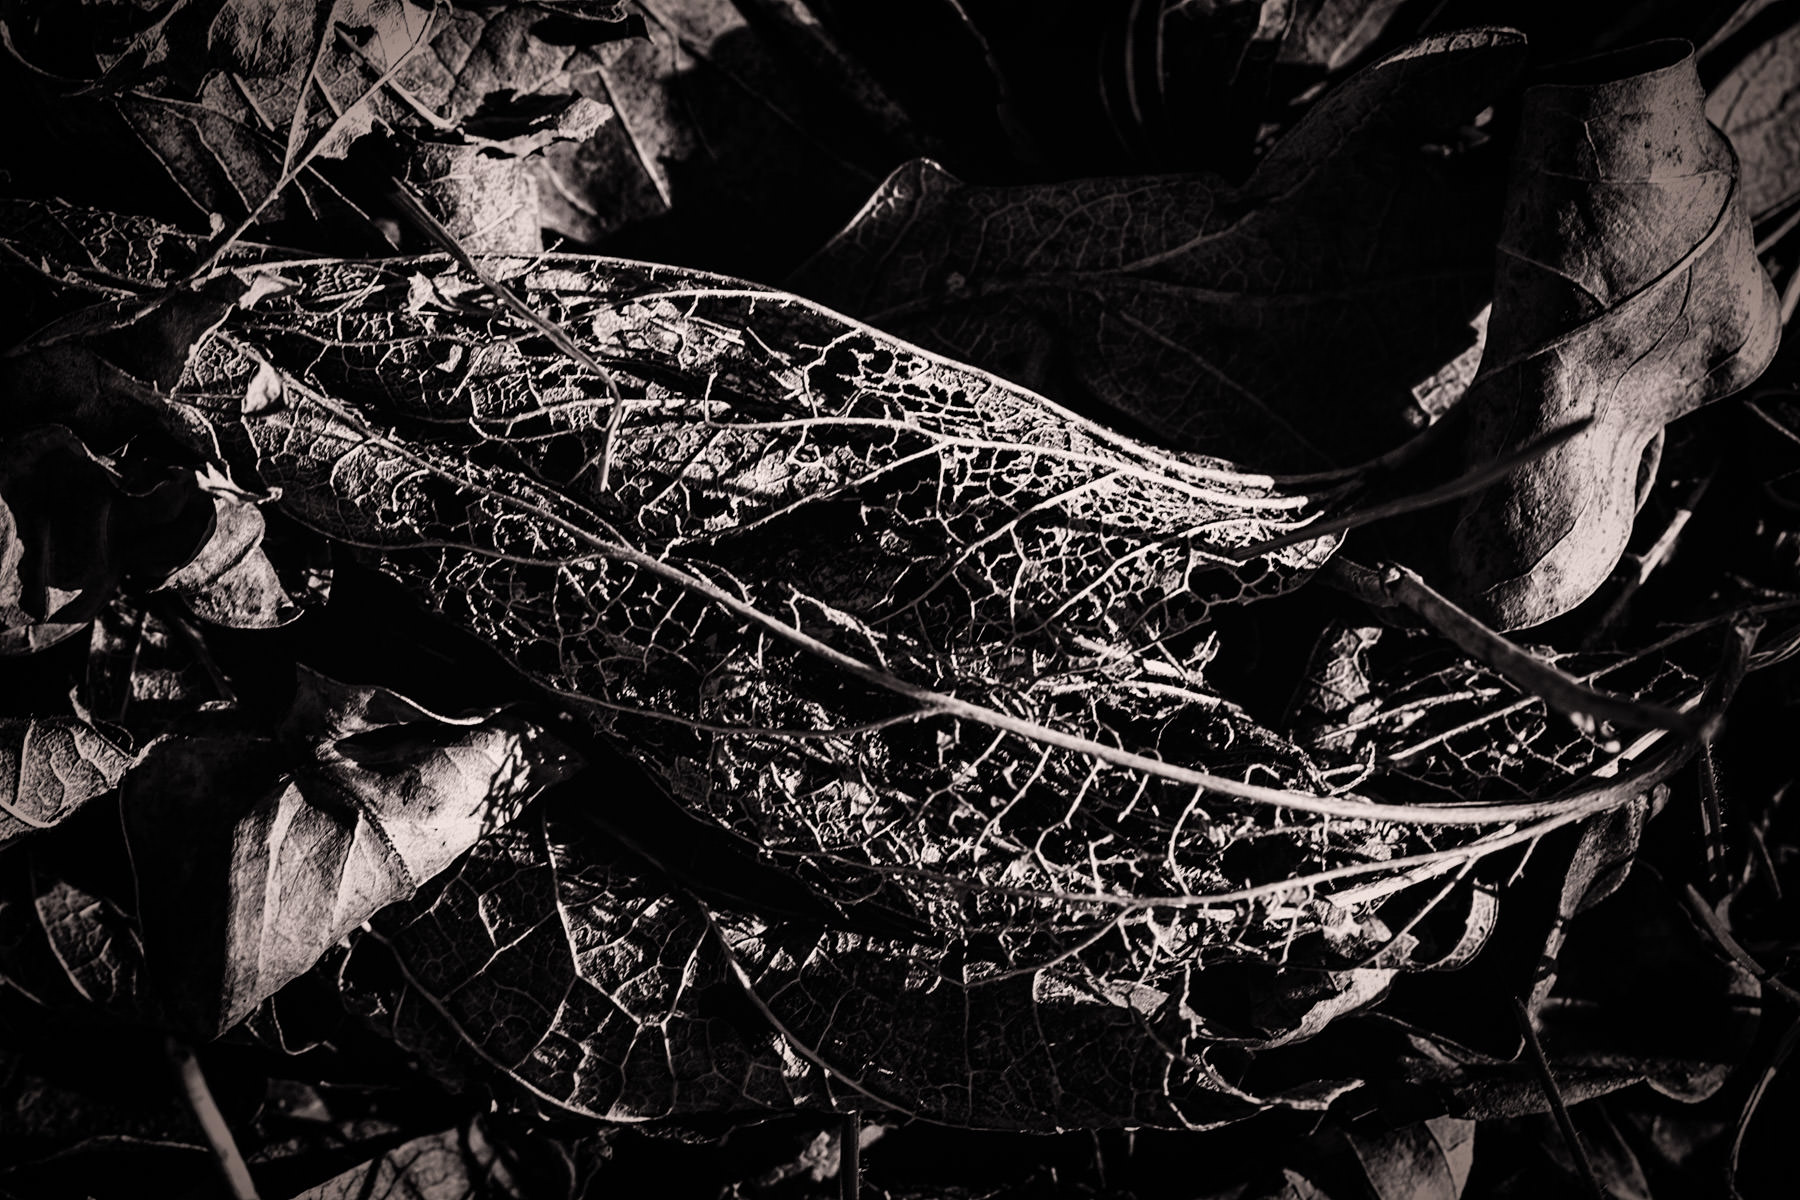 Detail of a decaying leaf.